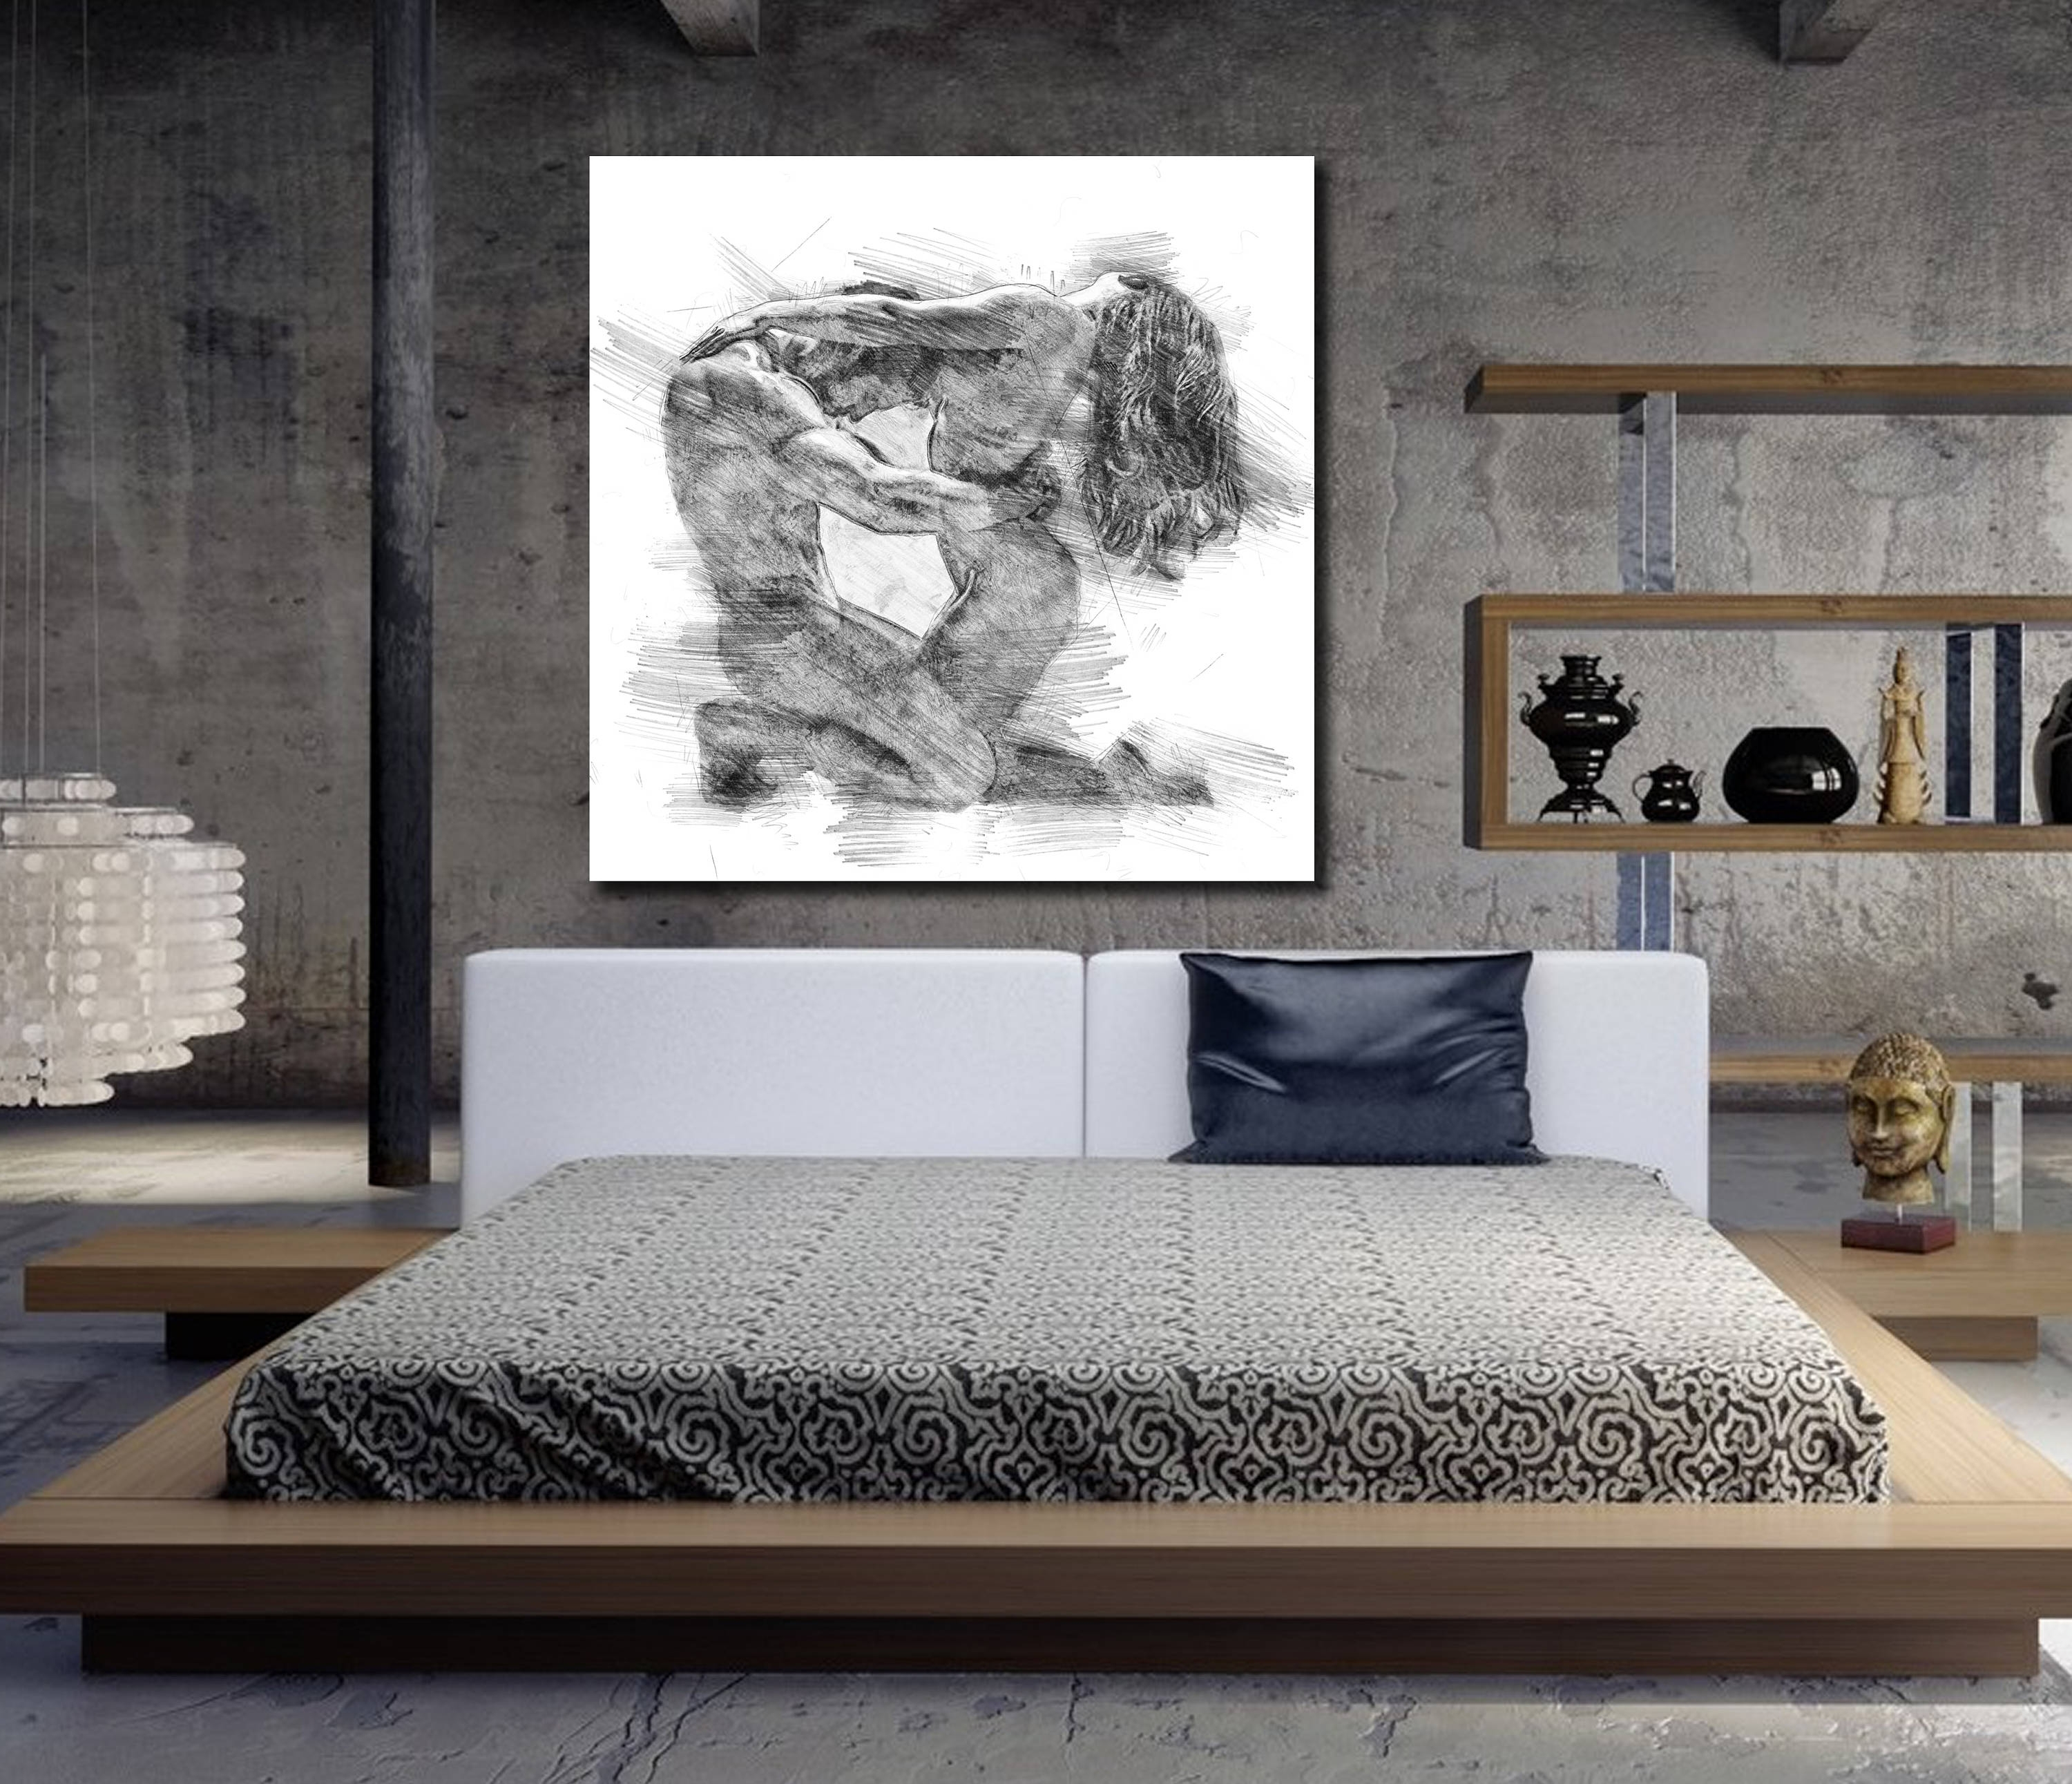 Abstract Wall Art For Bedroom Regarding Well Known Canvas Art His & Hers Bedroom Wall Art, Abstract Art Print, Pencil (View 5 of 15)